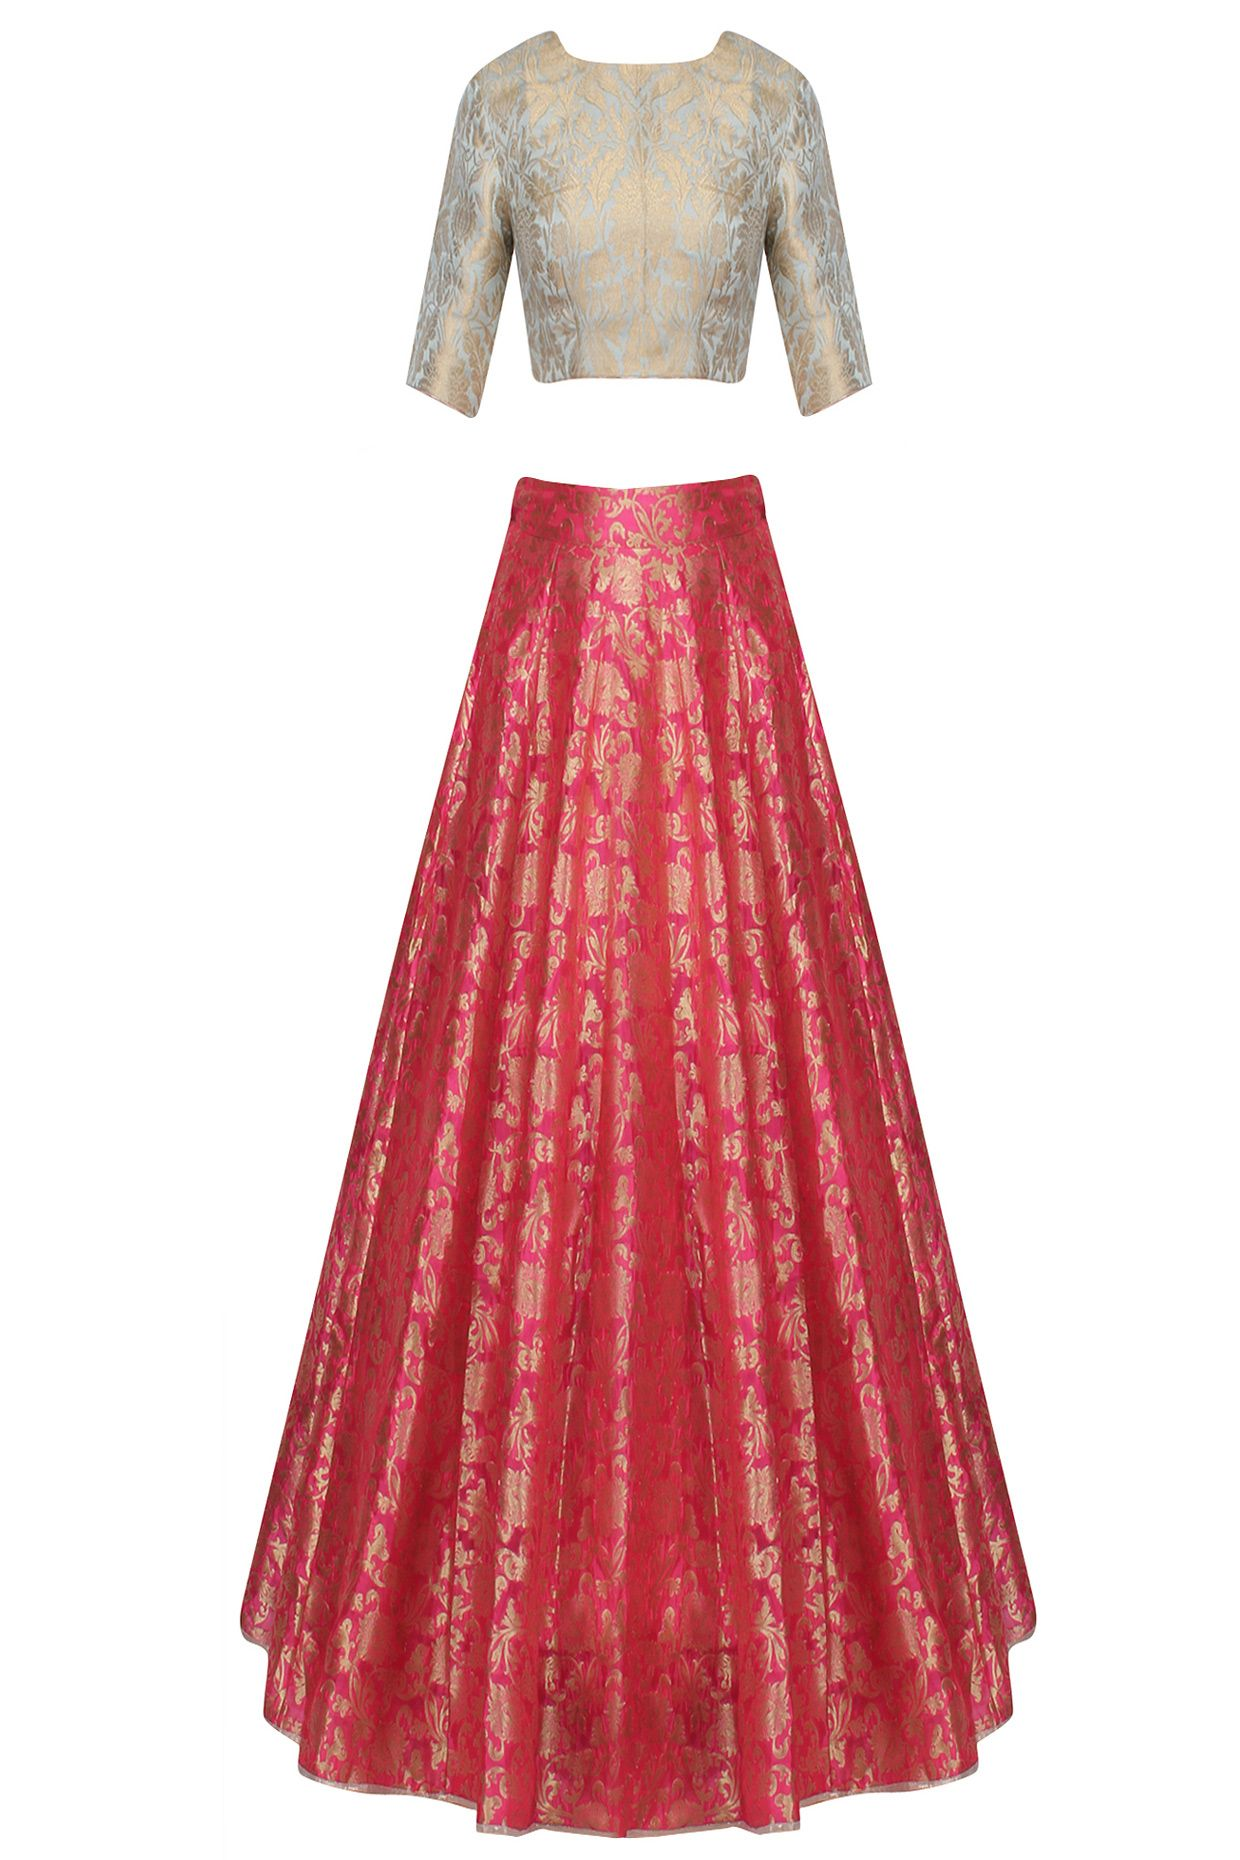 Top dresses to wear to a wedding  Aqua blue and pink ornate brocade lehenga set available only at